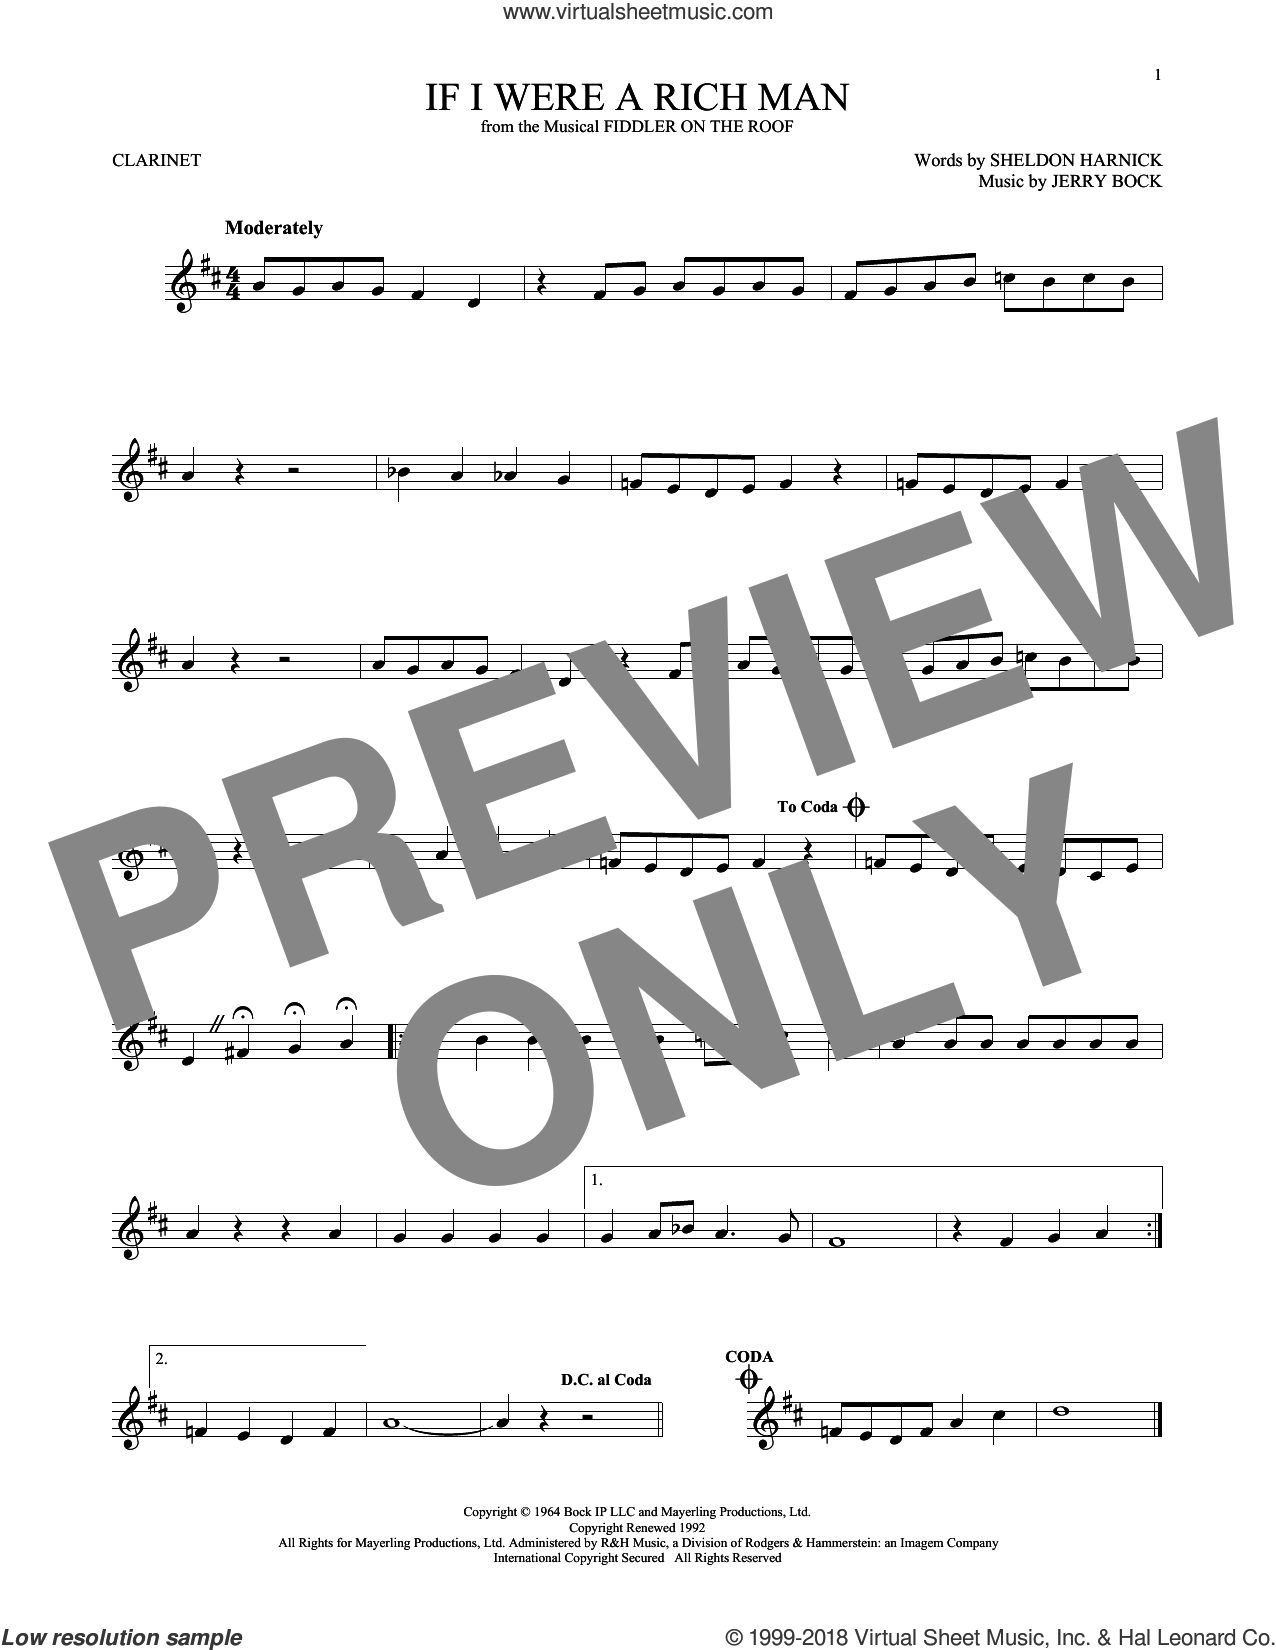 If I Were A Rich Man (from Fiddler On The Roof) sheet music for clarinet solo by Bock & Harnick, Jerry Bock and Sheldon Harnick, intermediate skill level